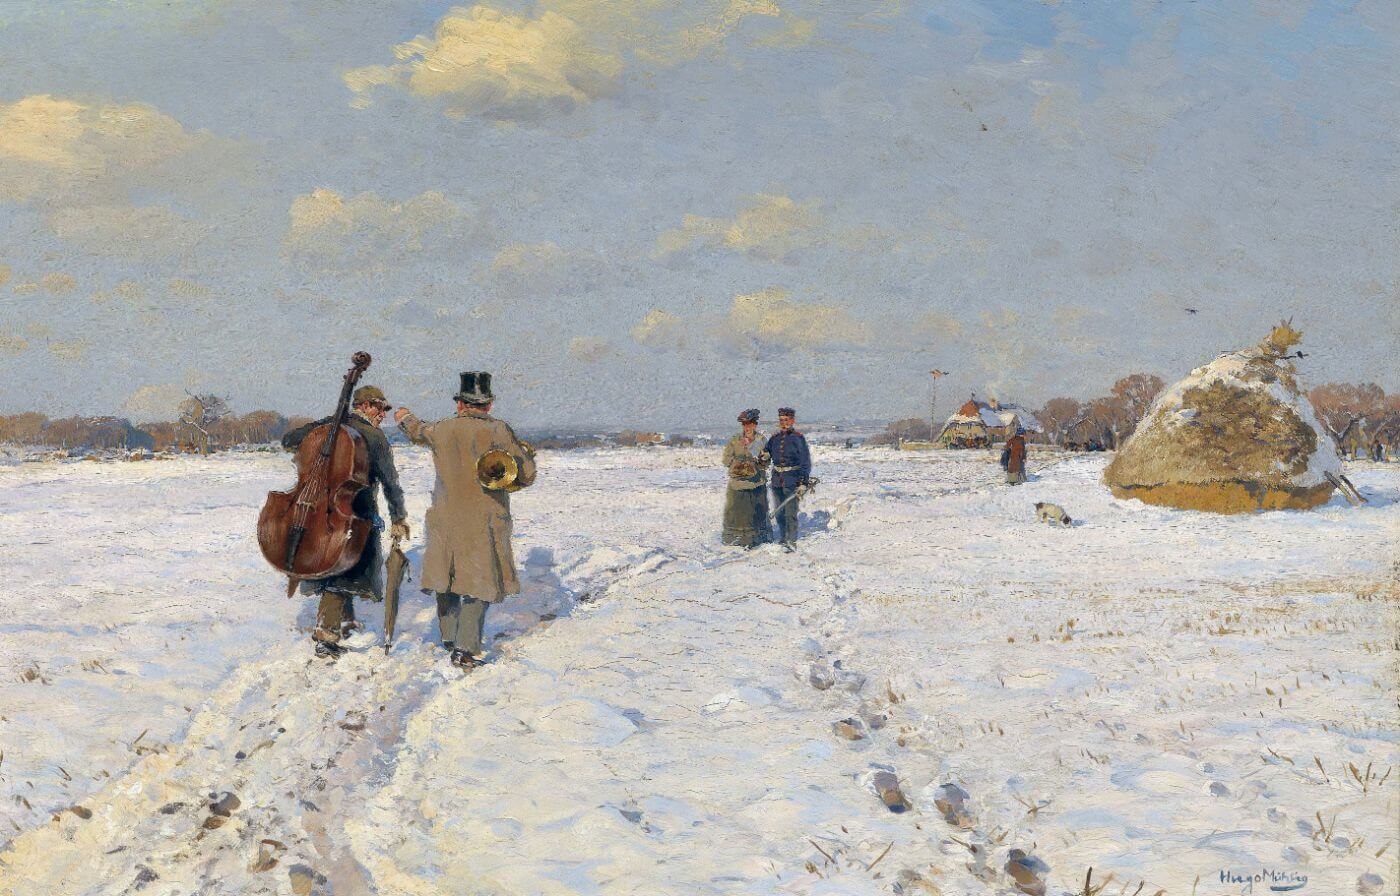 Musicians Returning Home - Hugo Mühlig  - Impressionist Painting - Posters